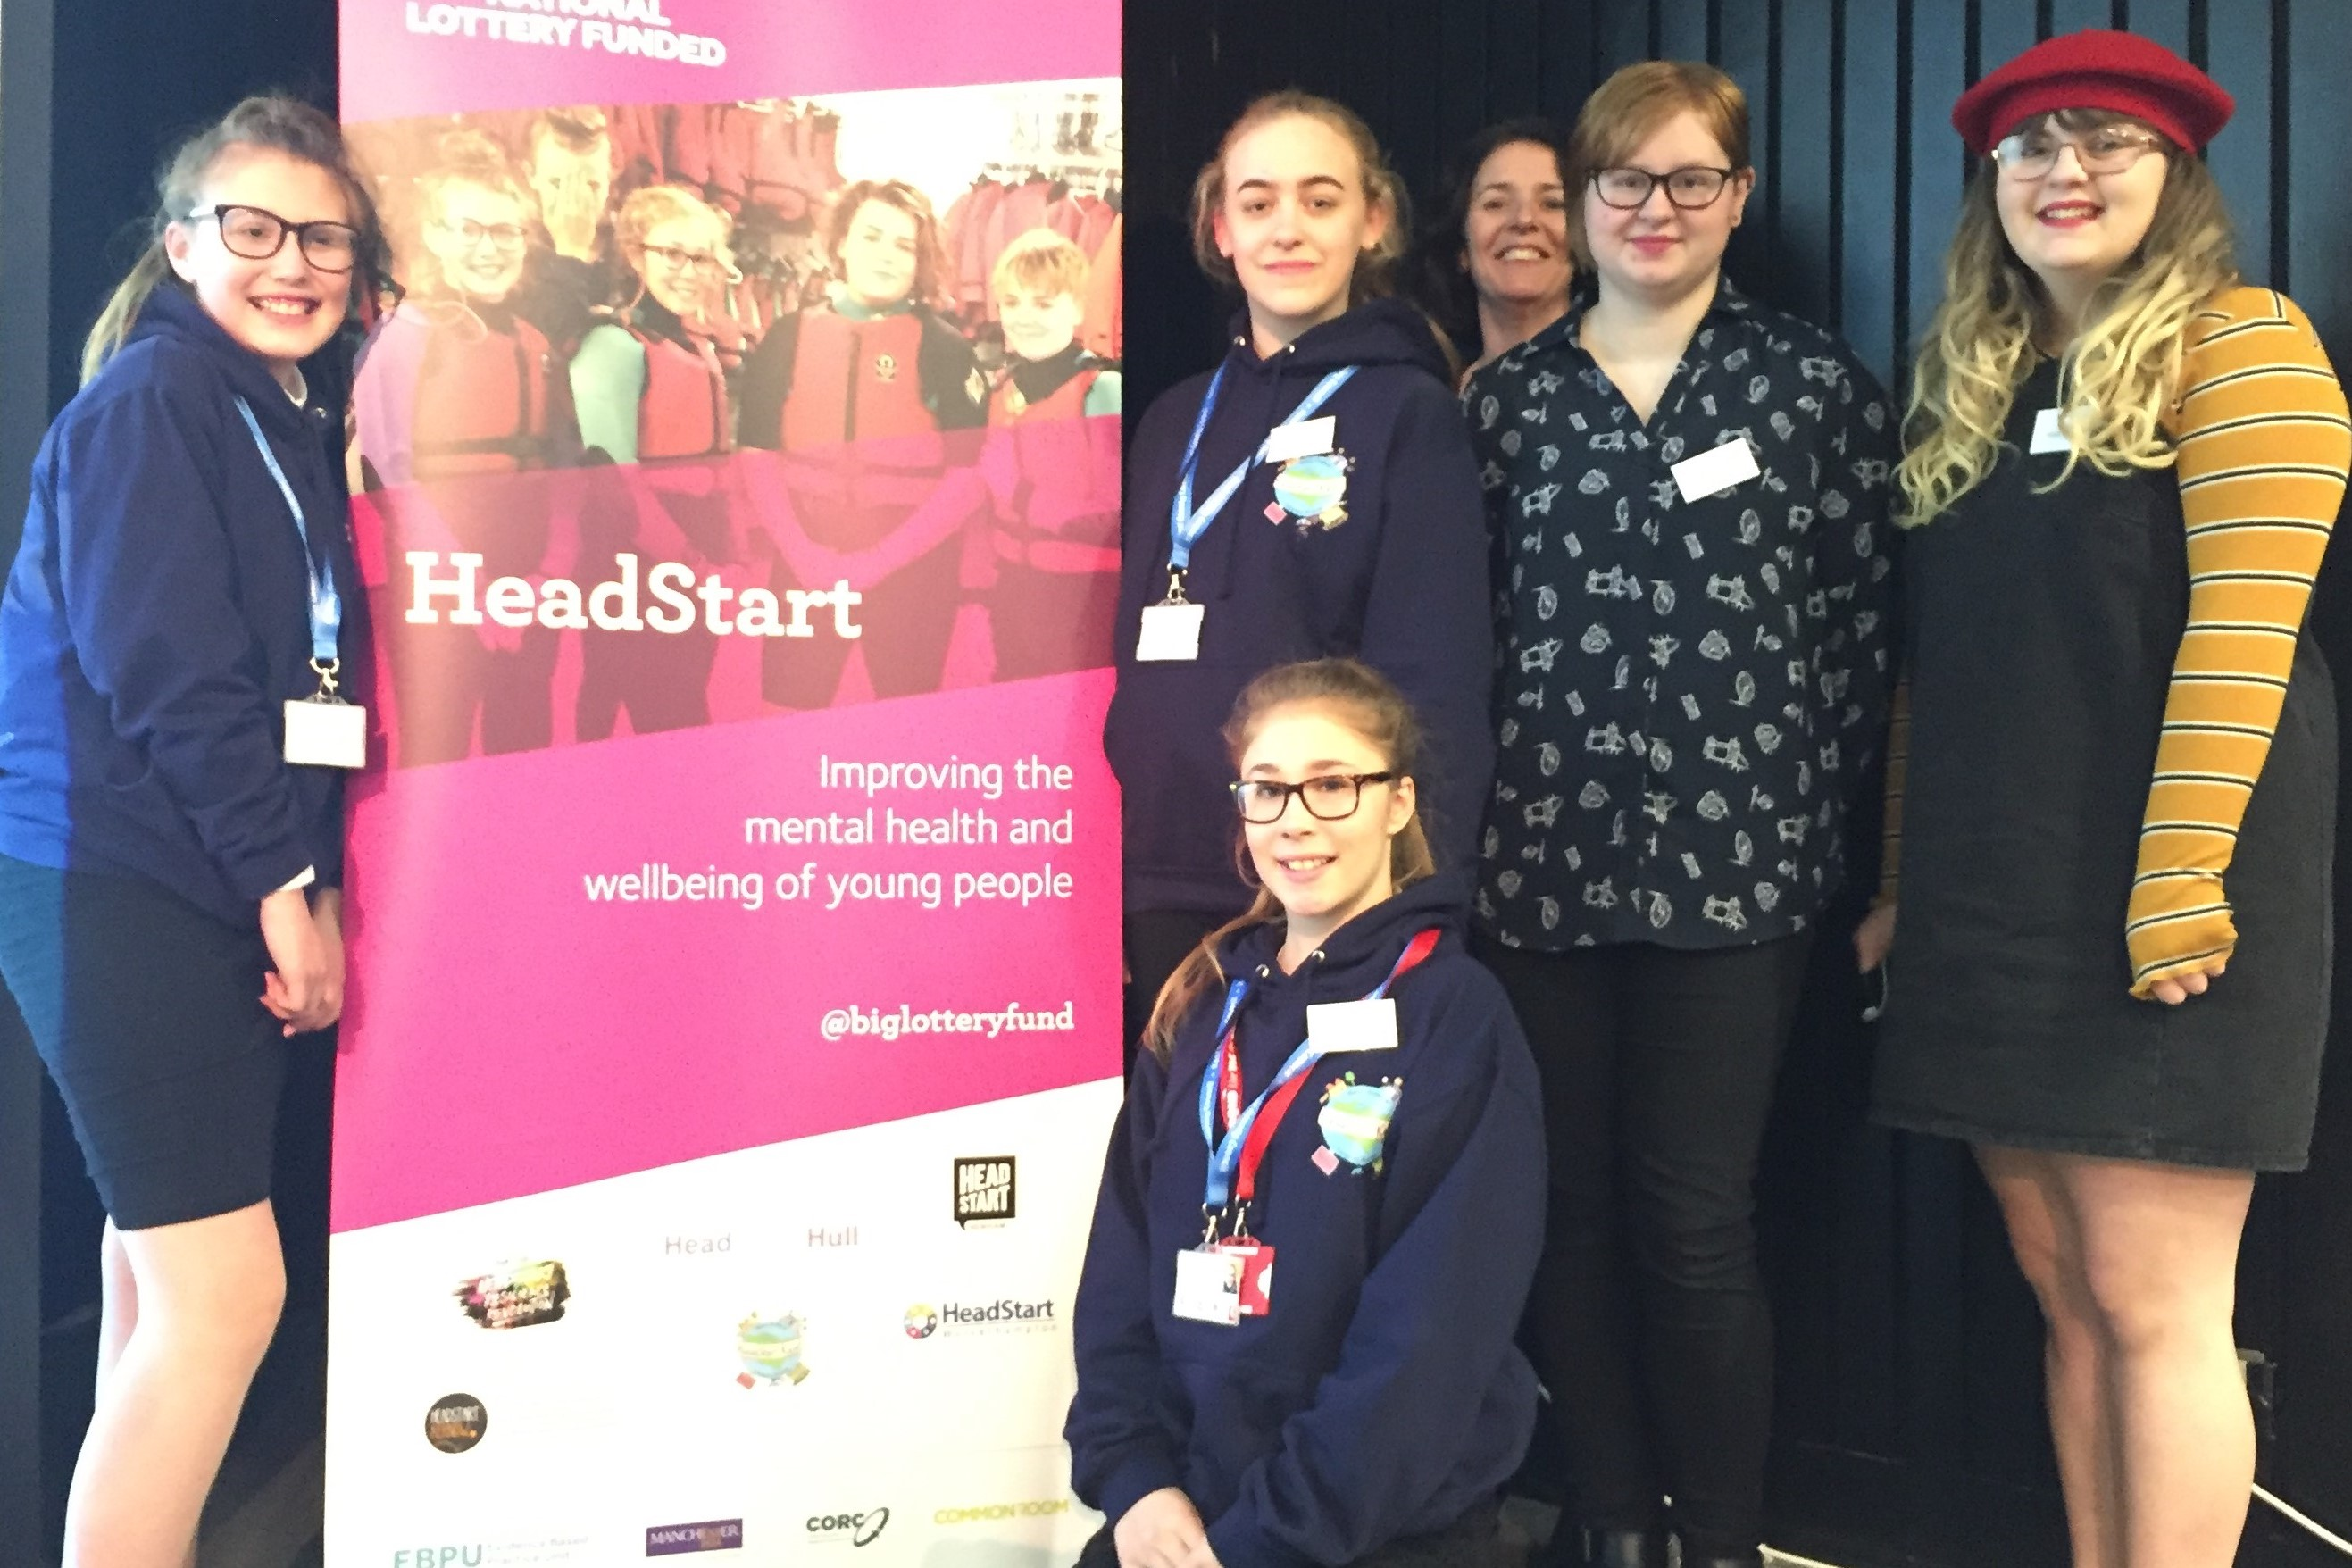 HeadStart youngsters speak at conference with Kate Middleton as guest